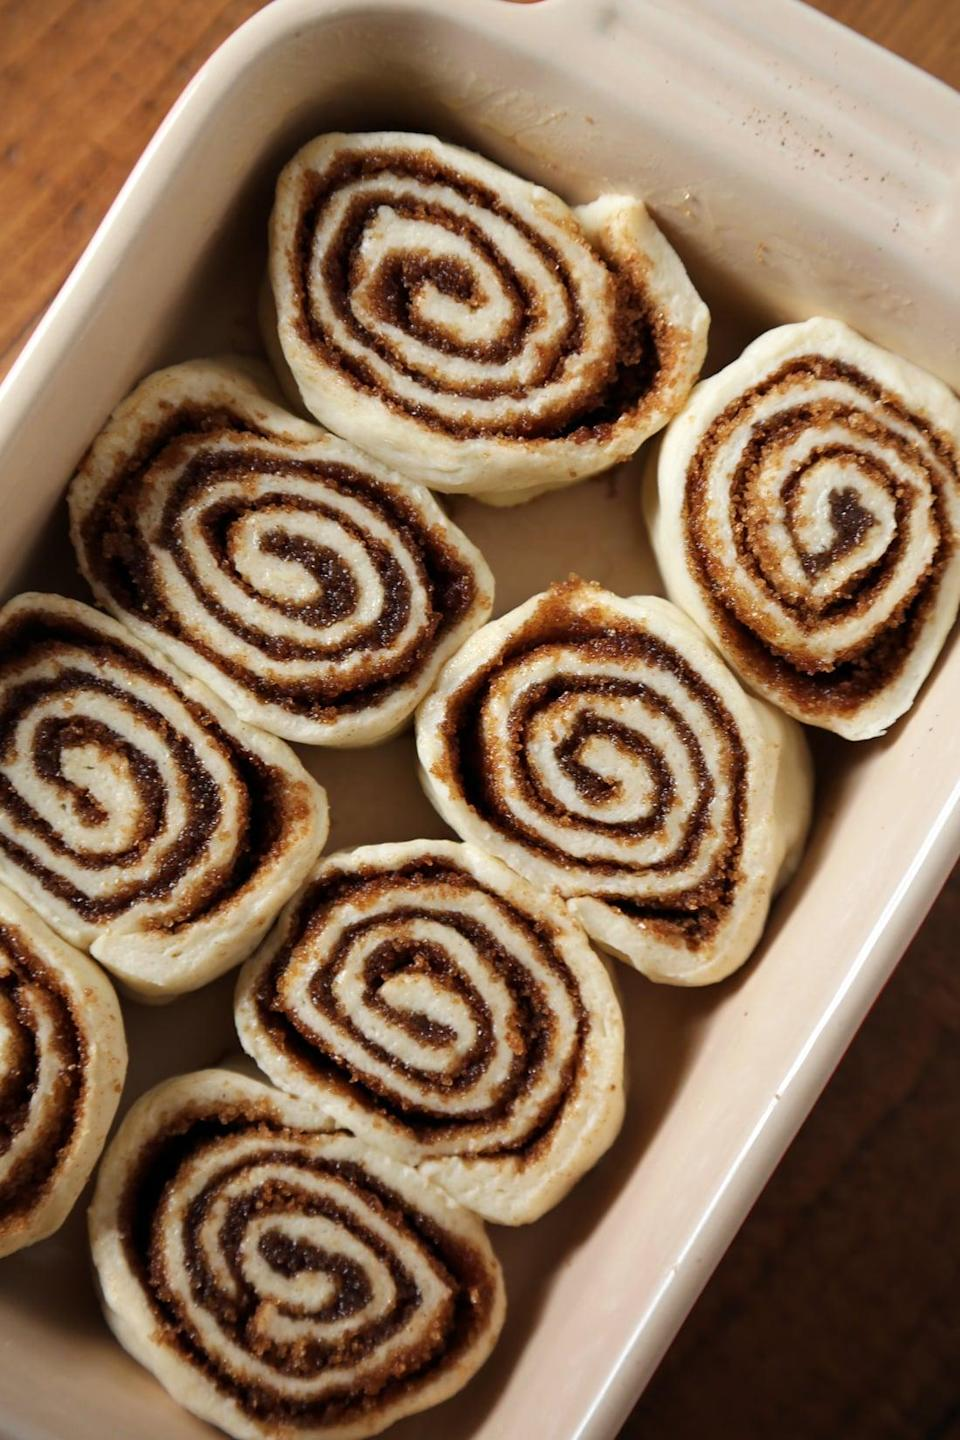 "<p>Cinnamon rolls were all the rage this year, and this mouthwatering recipe makes these glazed goodies in 30 minutes flat. Dripping with butter and brown sugar, these homemade treats will make you swoon.</p> <p><strong>Get the recipe</strong>: <a href=""https://www.popsugar.com/food/Cinnamon-Roll-Recipe-28372881"" class=""link rapid-noclick-resp"" rel=""nofollow noopener"" target=""_blank"" data-ylk=""slk:crescent cinnamon rolls"">crescent cinnamon rolls</a></p>"